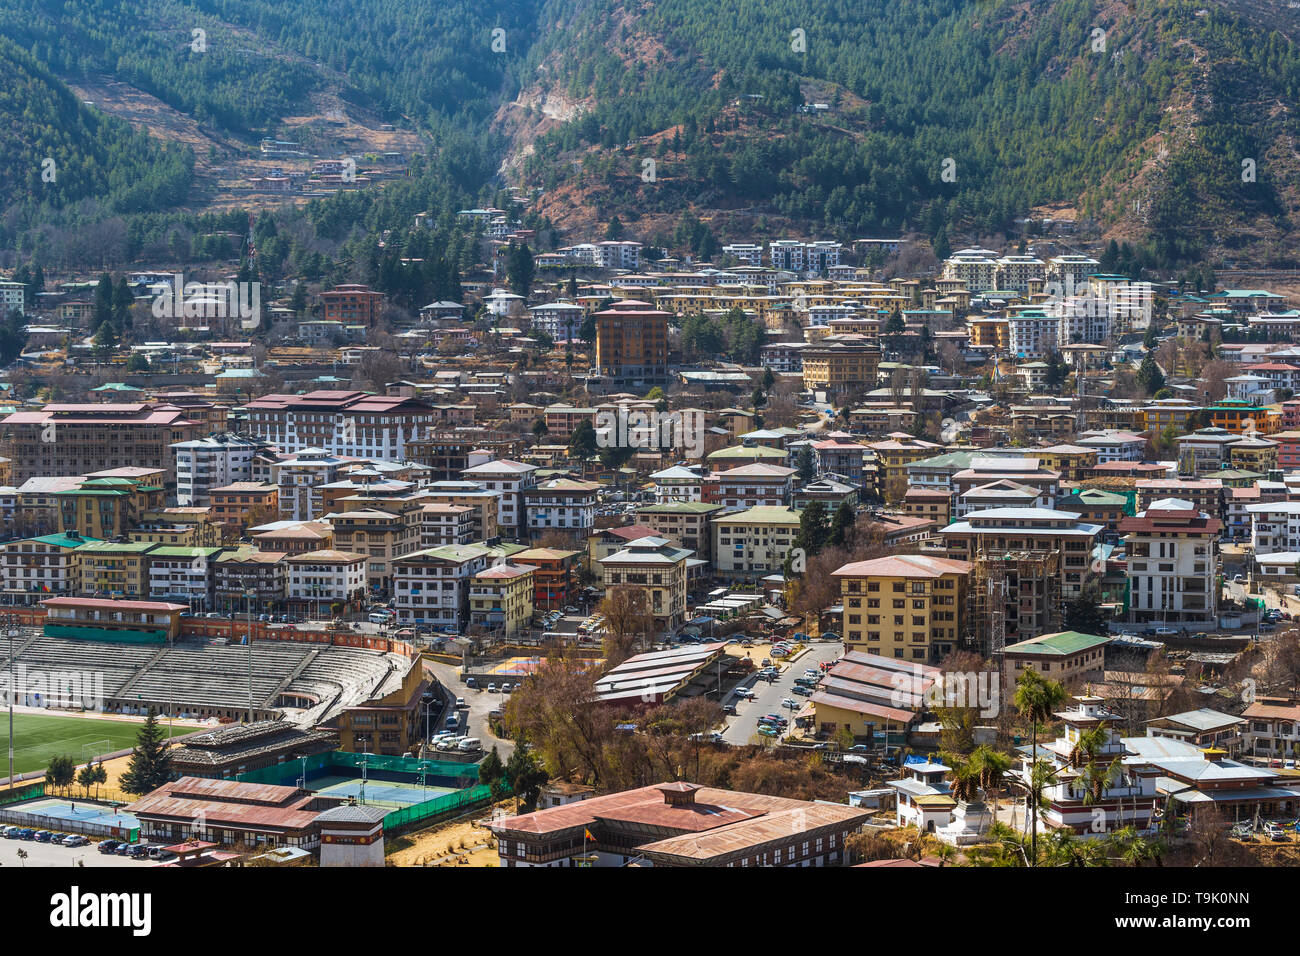 Thimphu is one of the fastest growing capitals in Asia - Stock Image